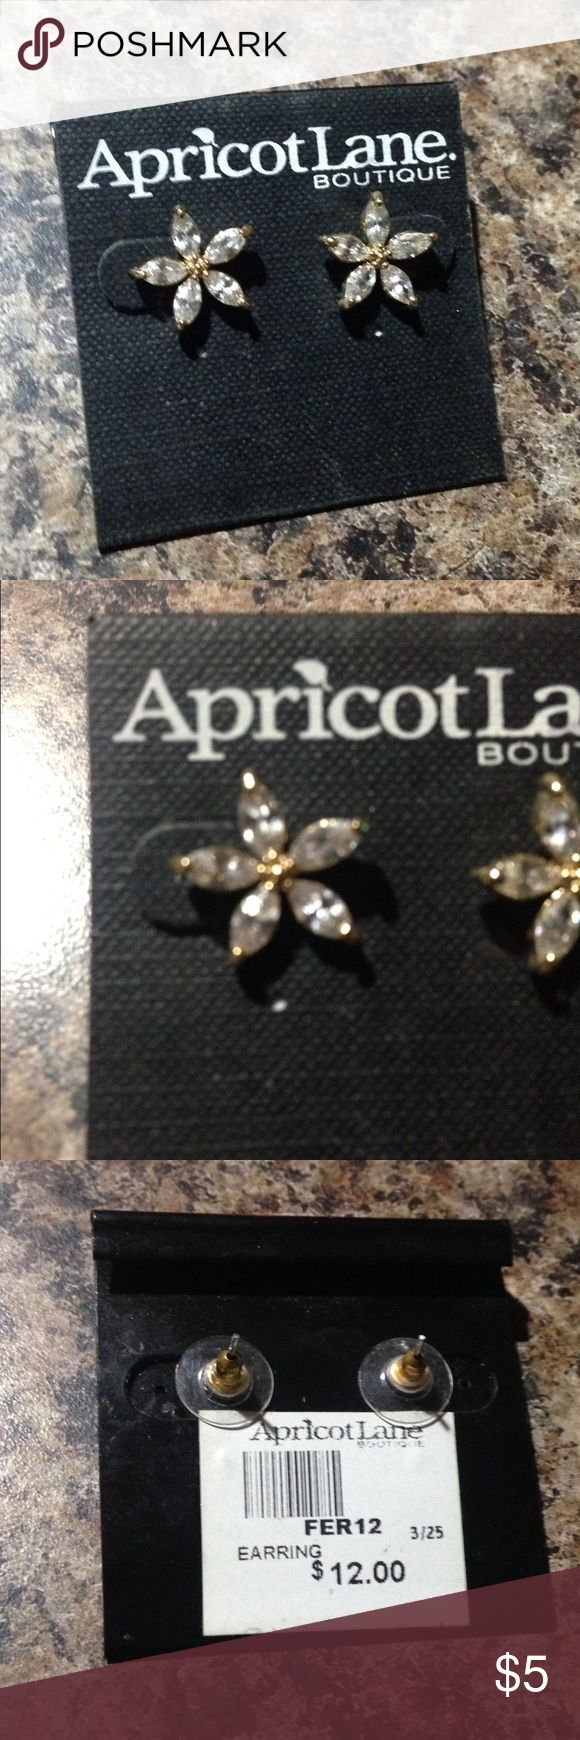 Apricot Lane Earrings Never been worn Apricot Lane Earrings Apricot Lane Jewelry Earrings